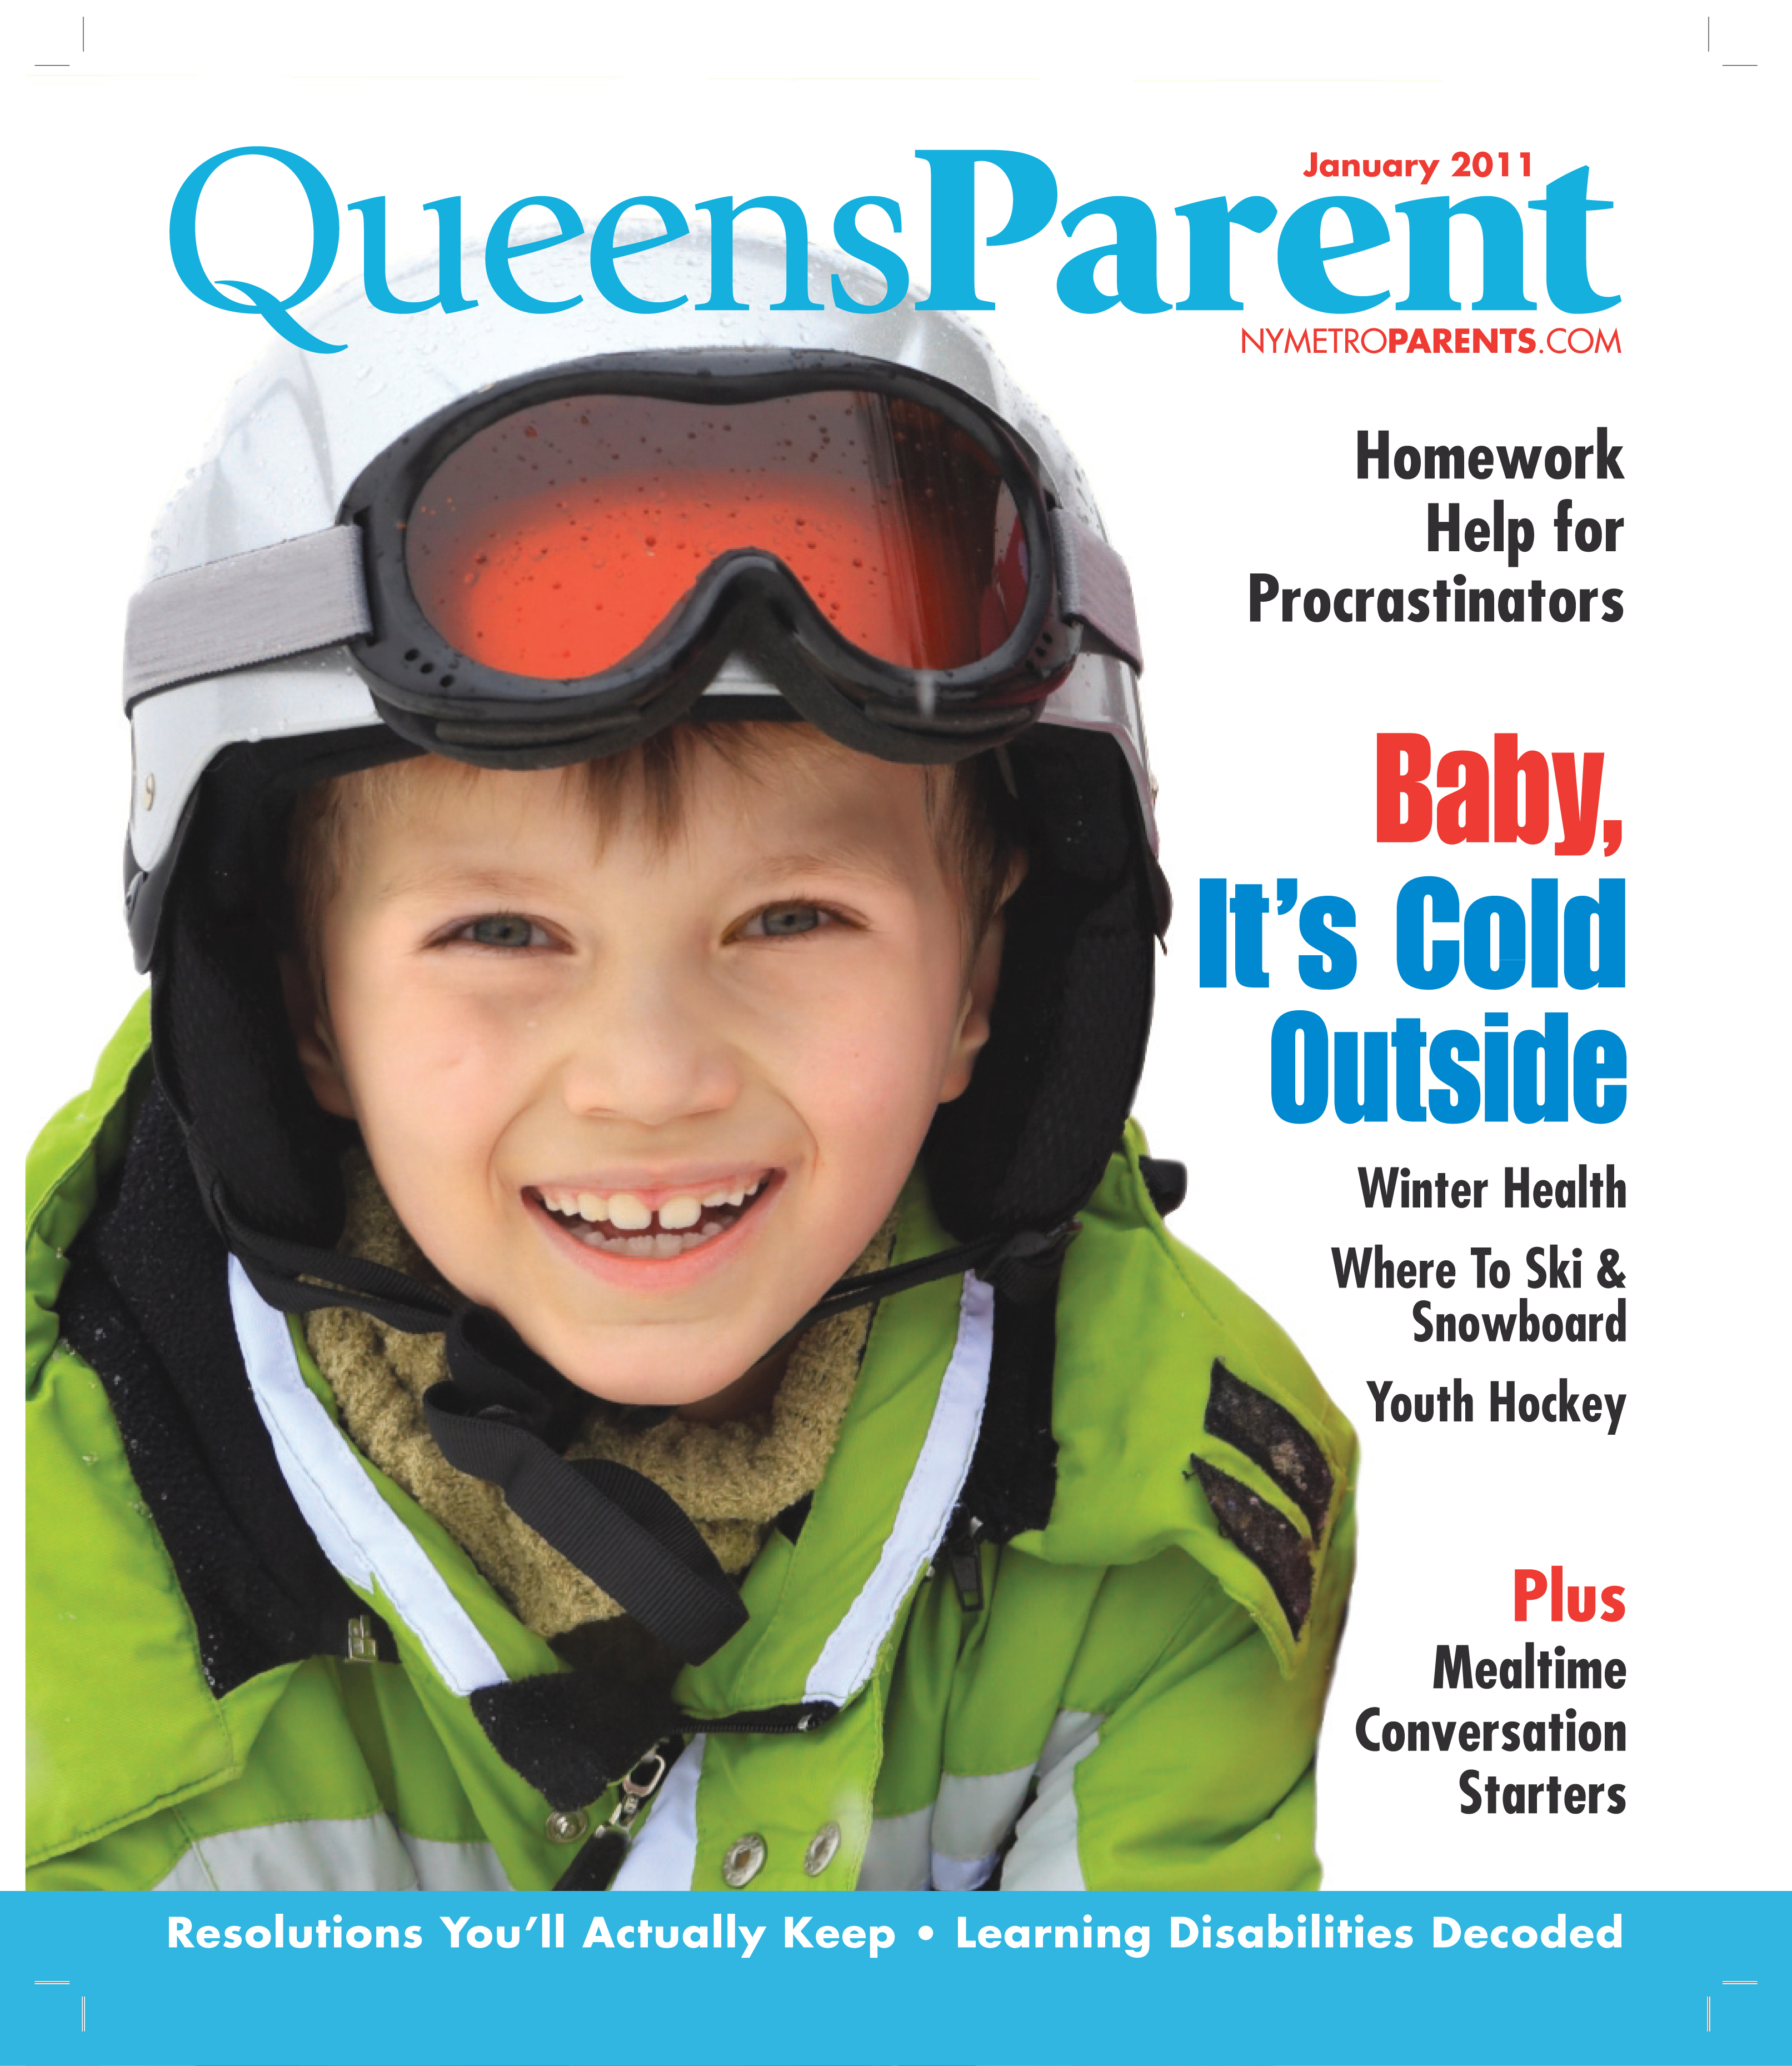 Queens Parent magazine, January 2011 cover